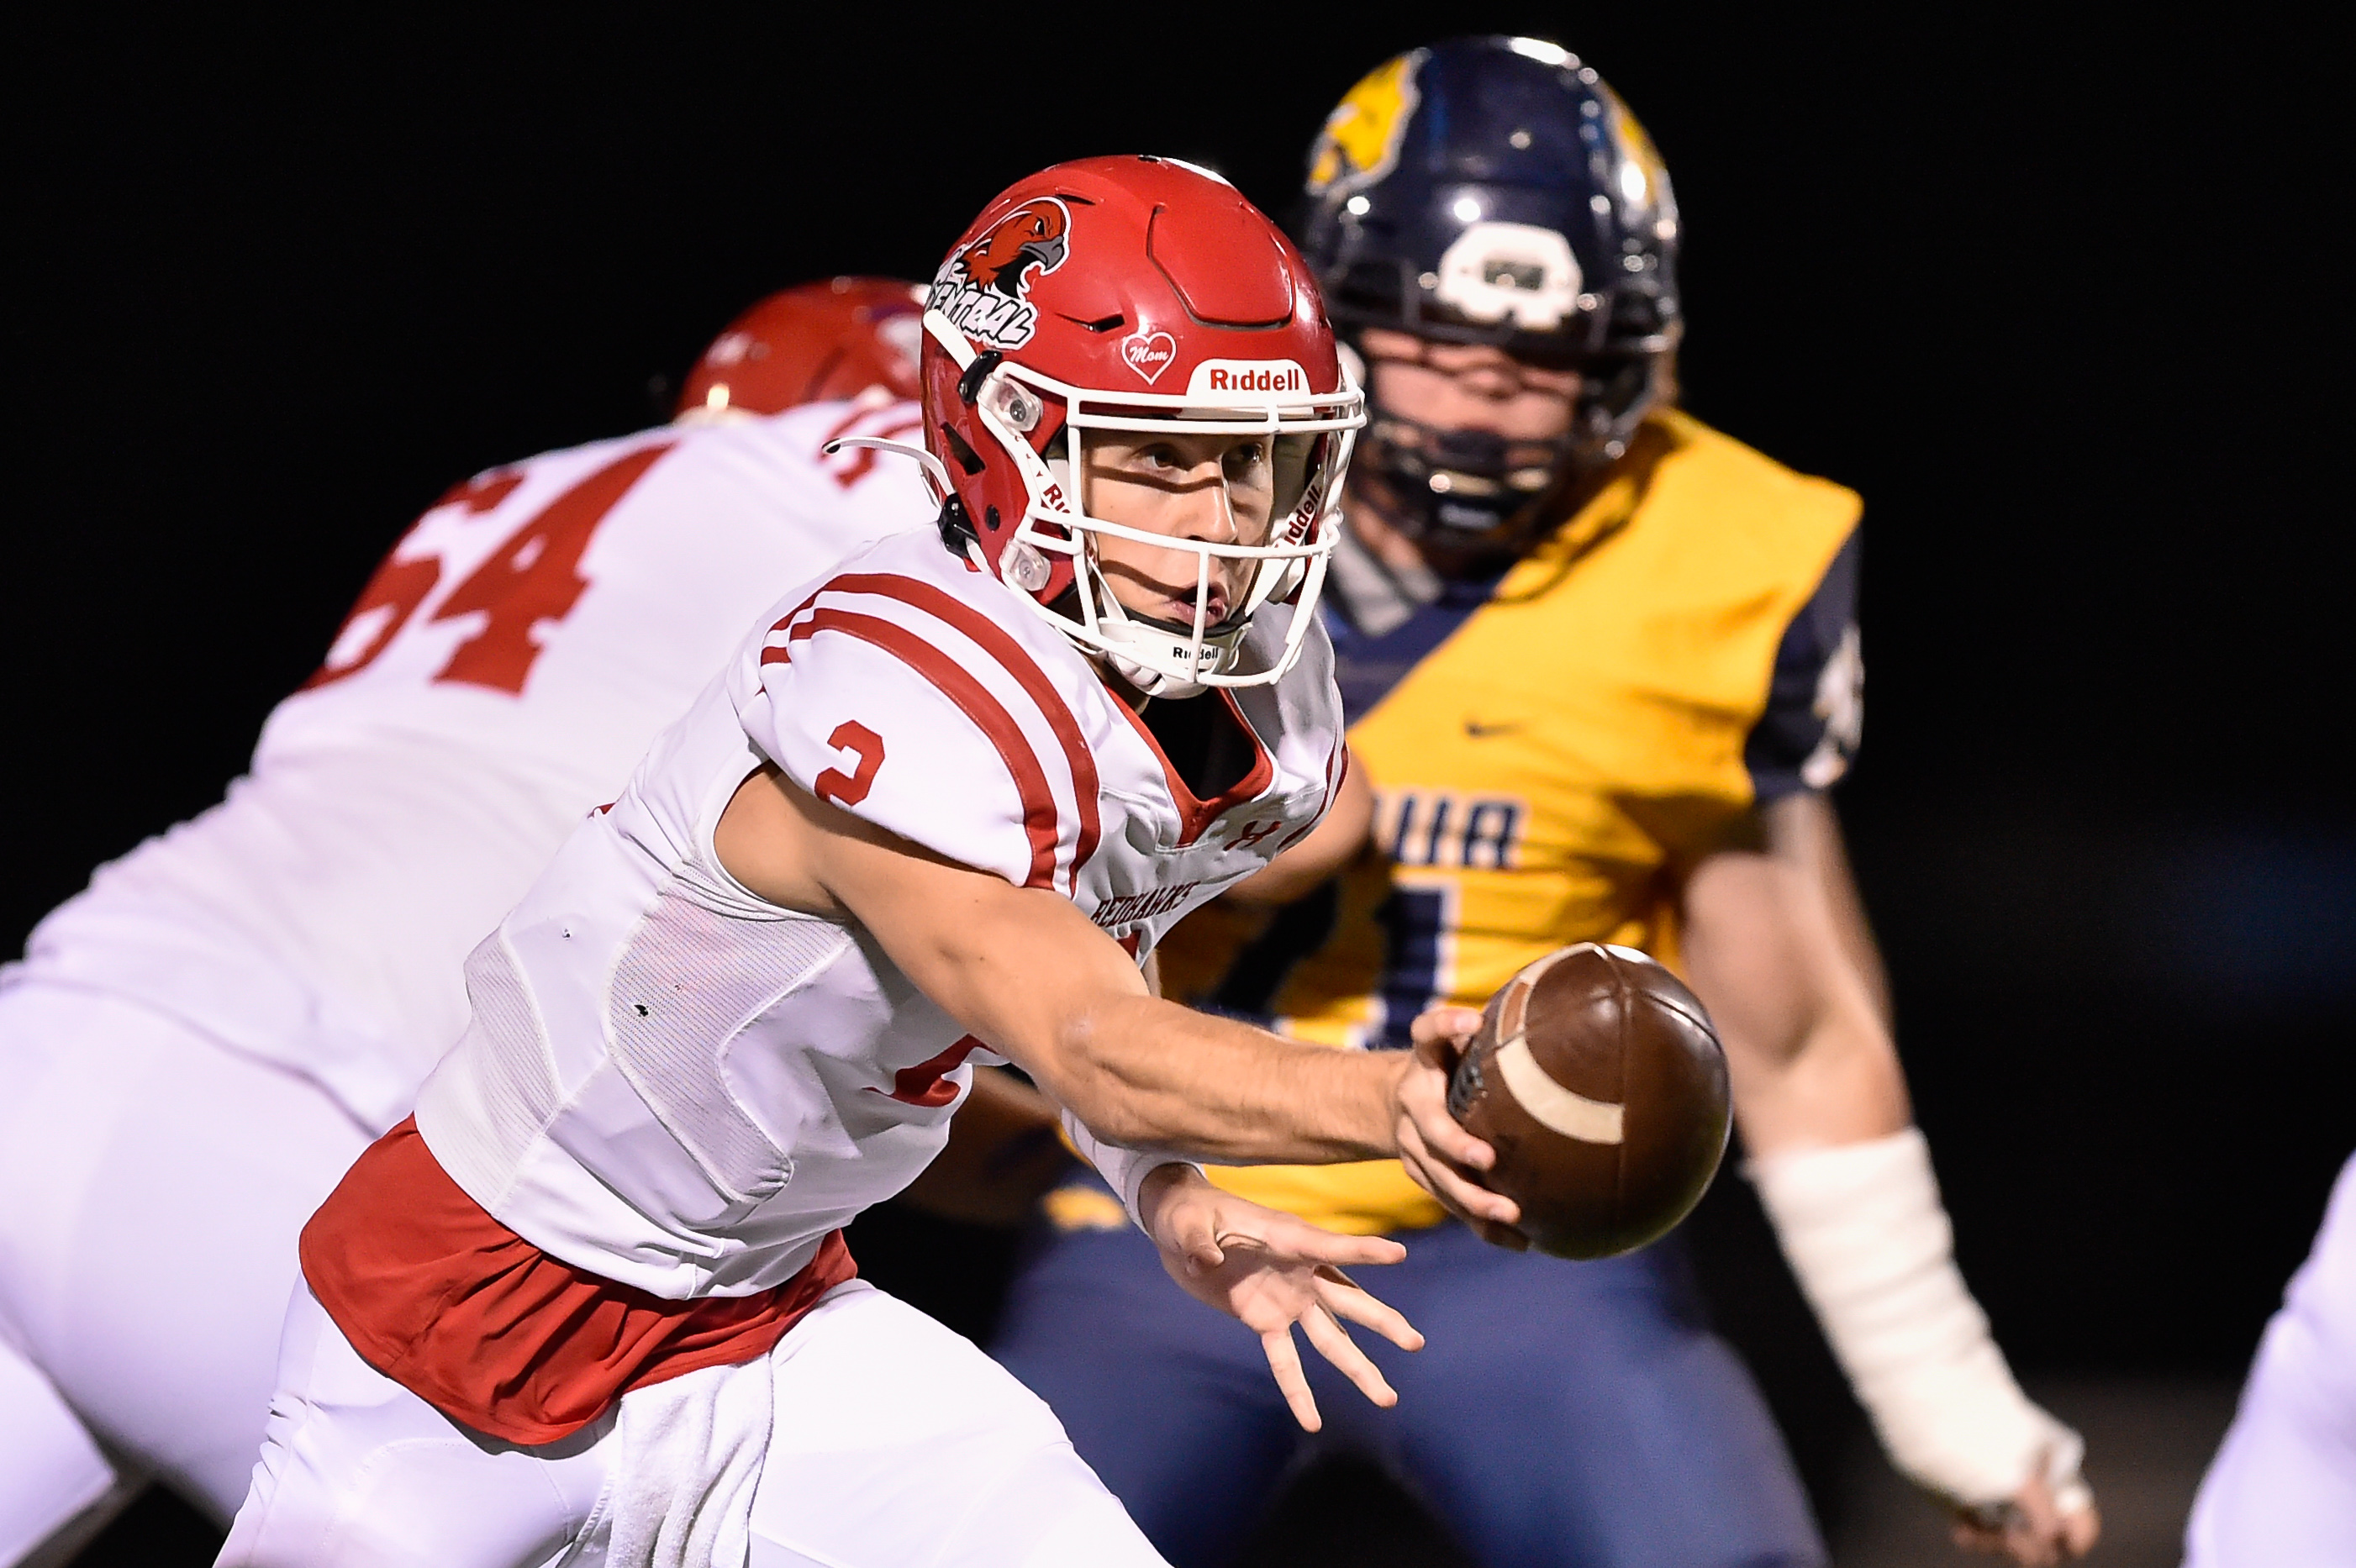 Naperville Central's Owen Prucha (2) hands off the ball against Neuqua Valley.